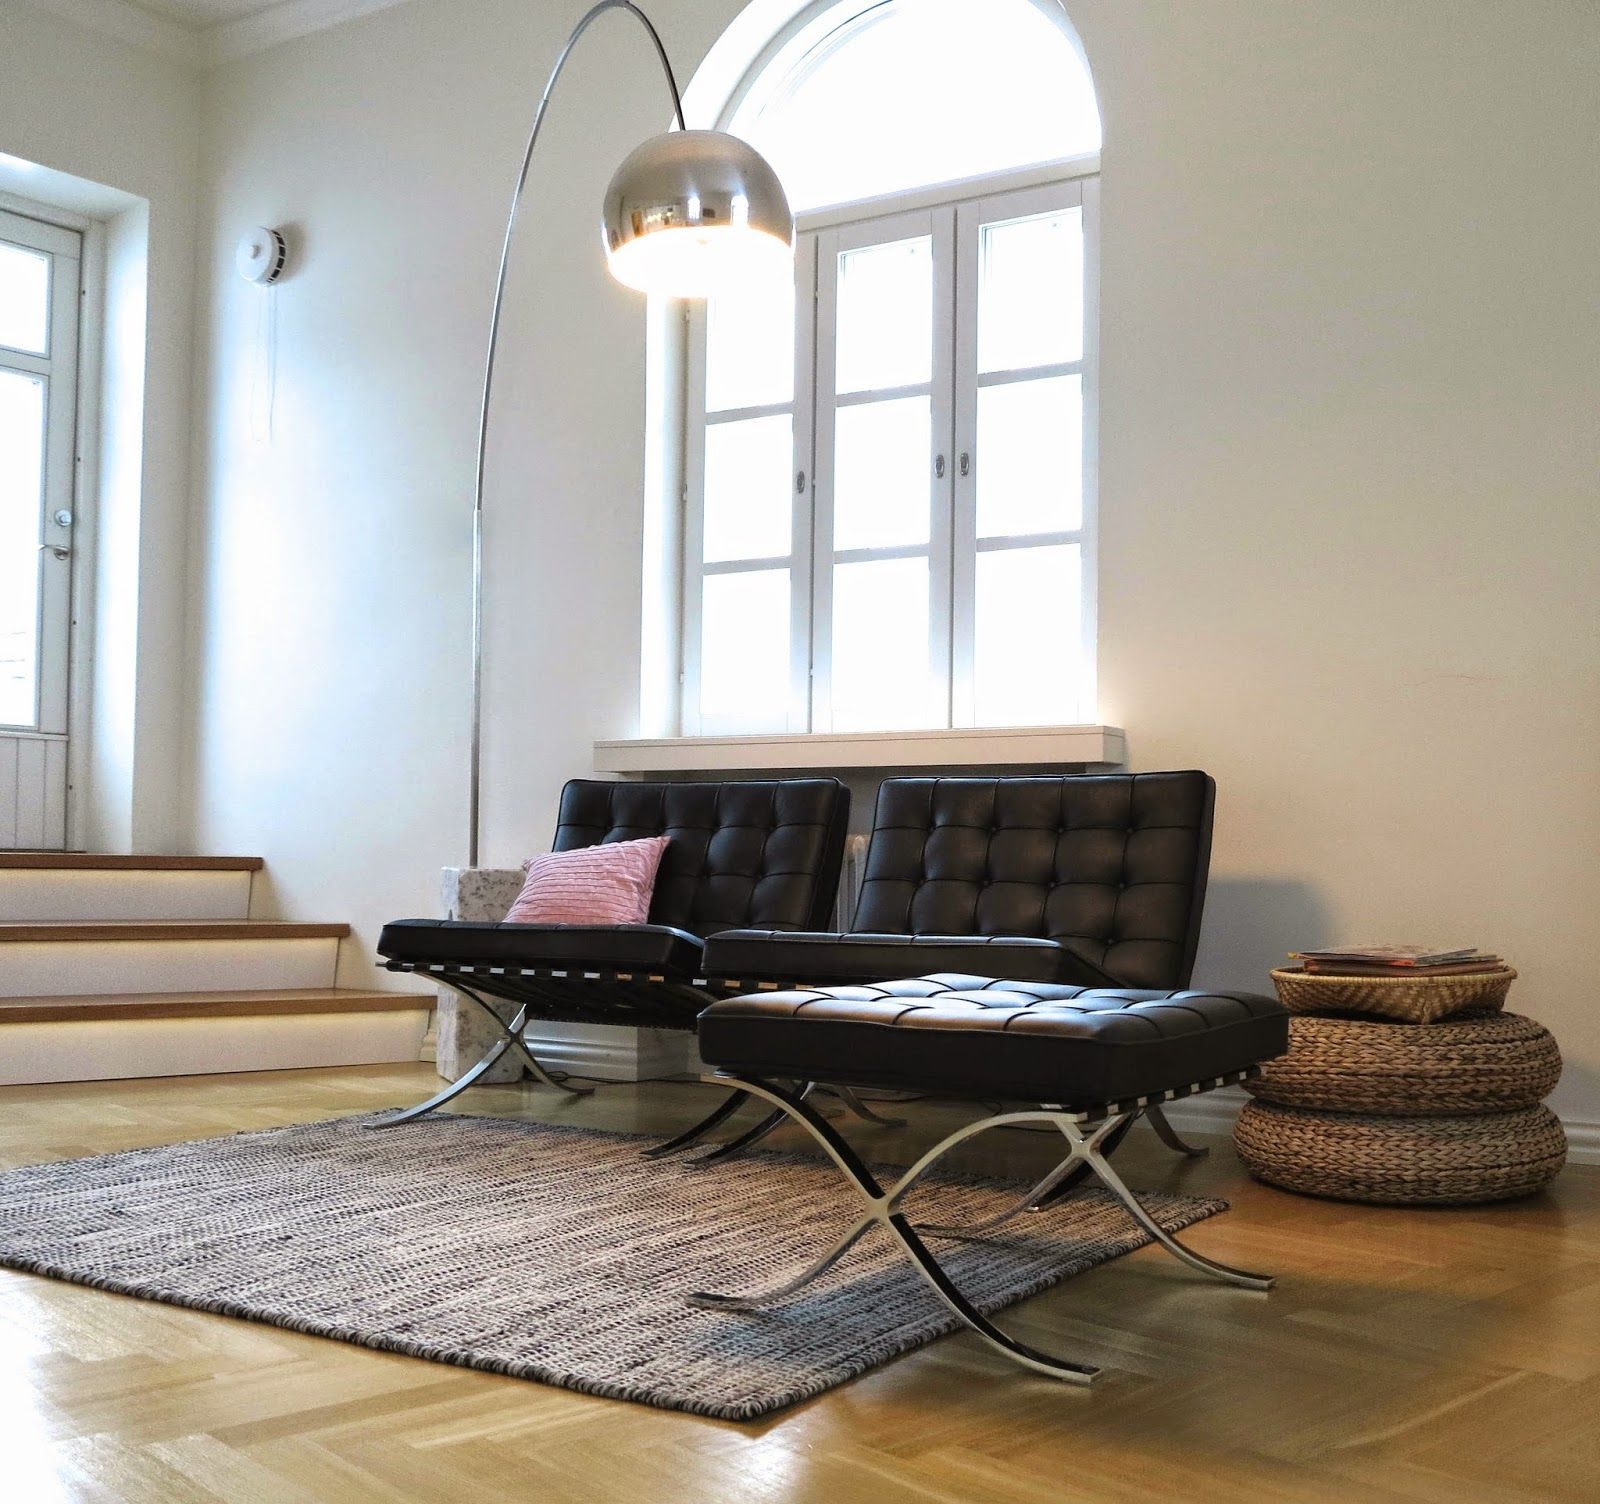 Livingroom with Barcelona chairs from Knoll and Arco lamp